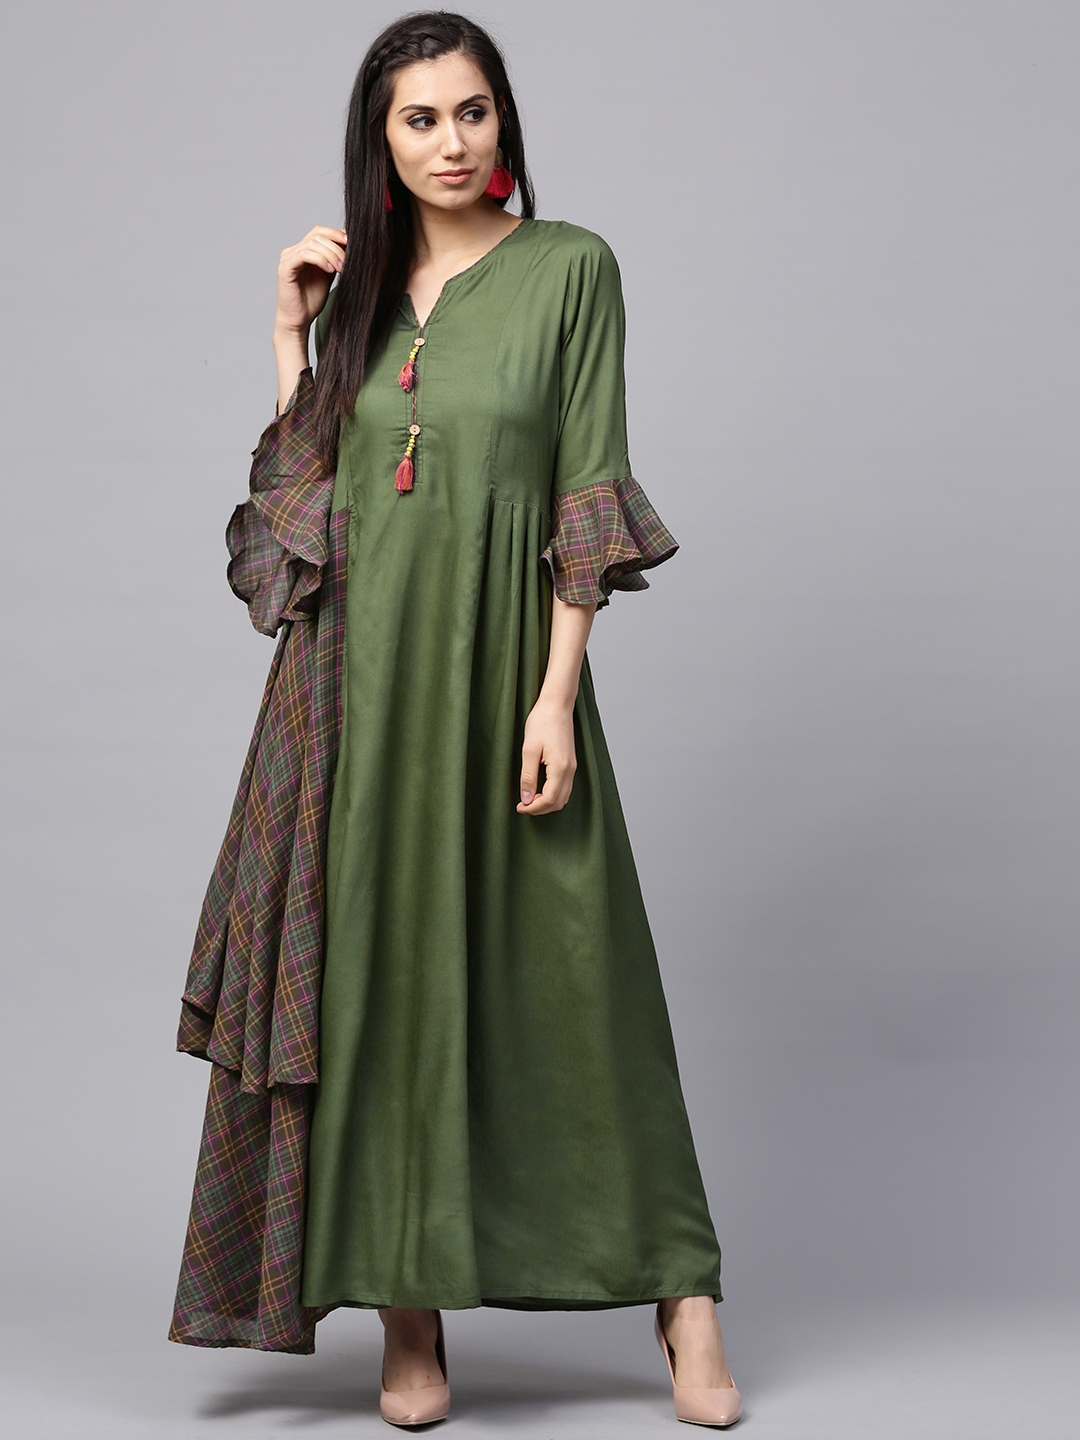 ce4fd9e013c4 Buy Shree Women Green Checked Maxi Dress - Dresses for Women 5388718 ...